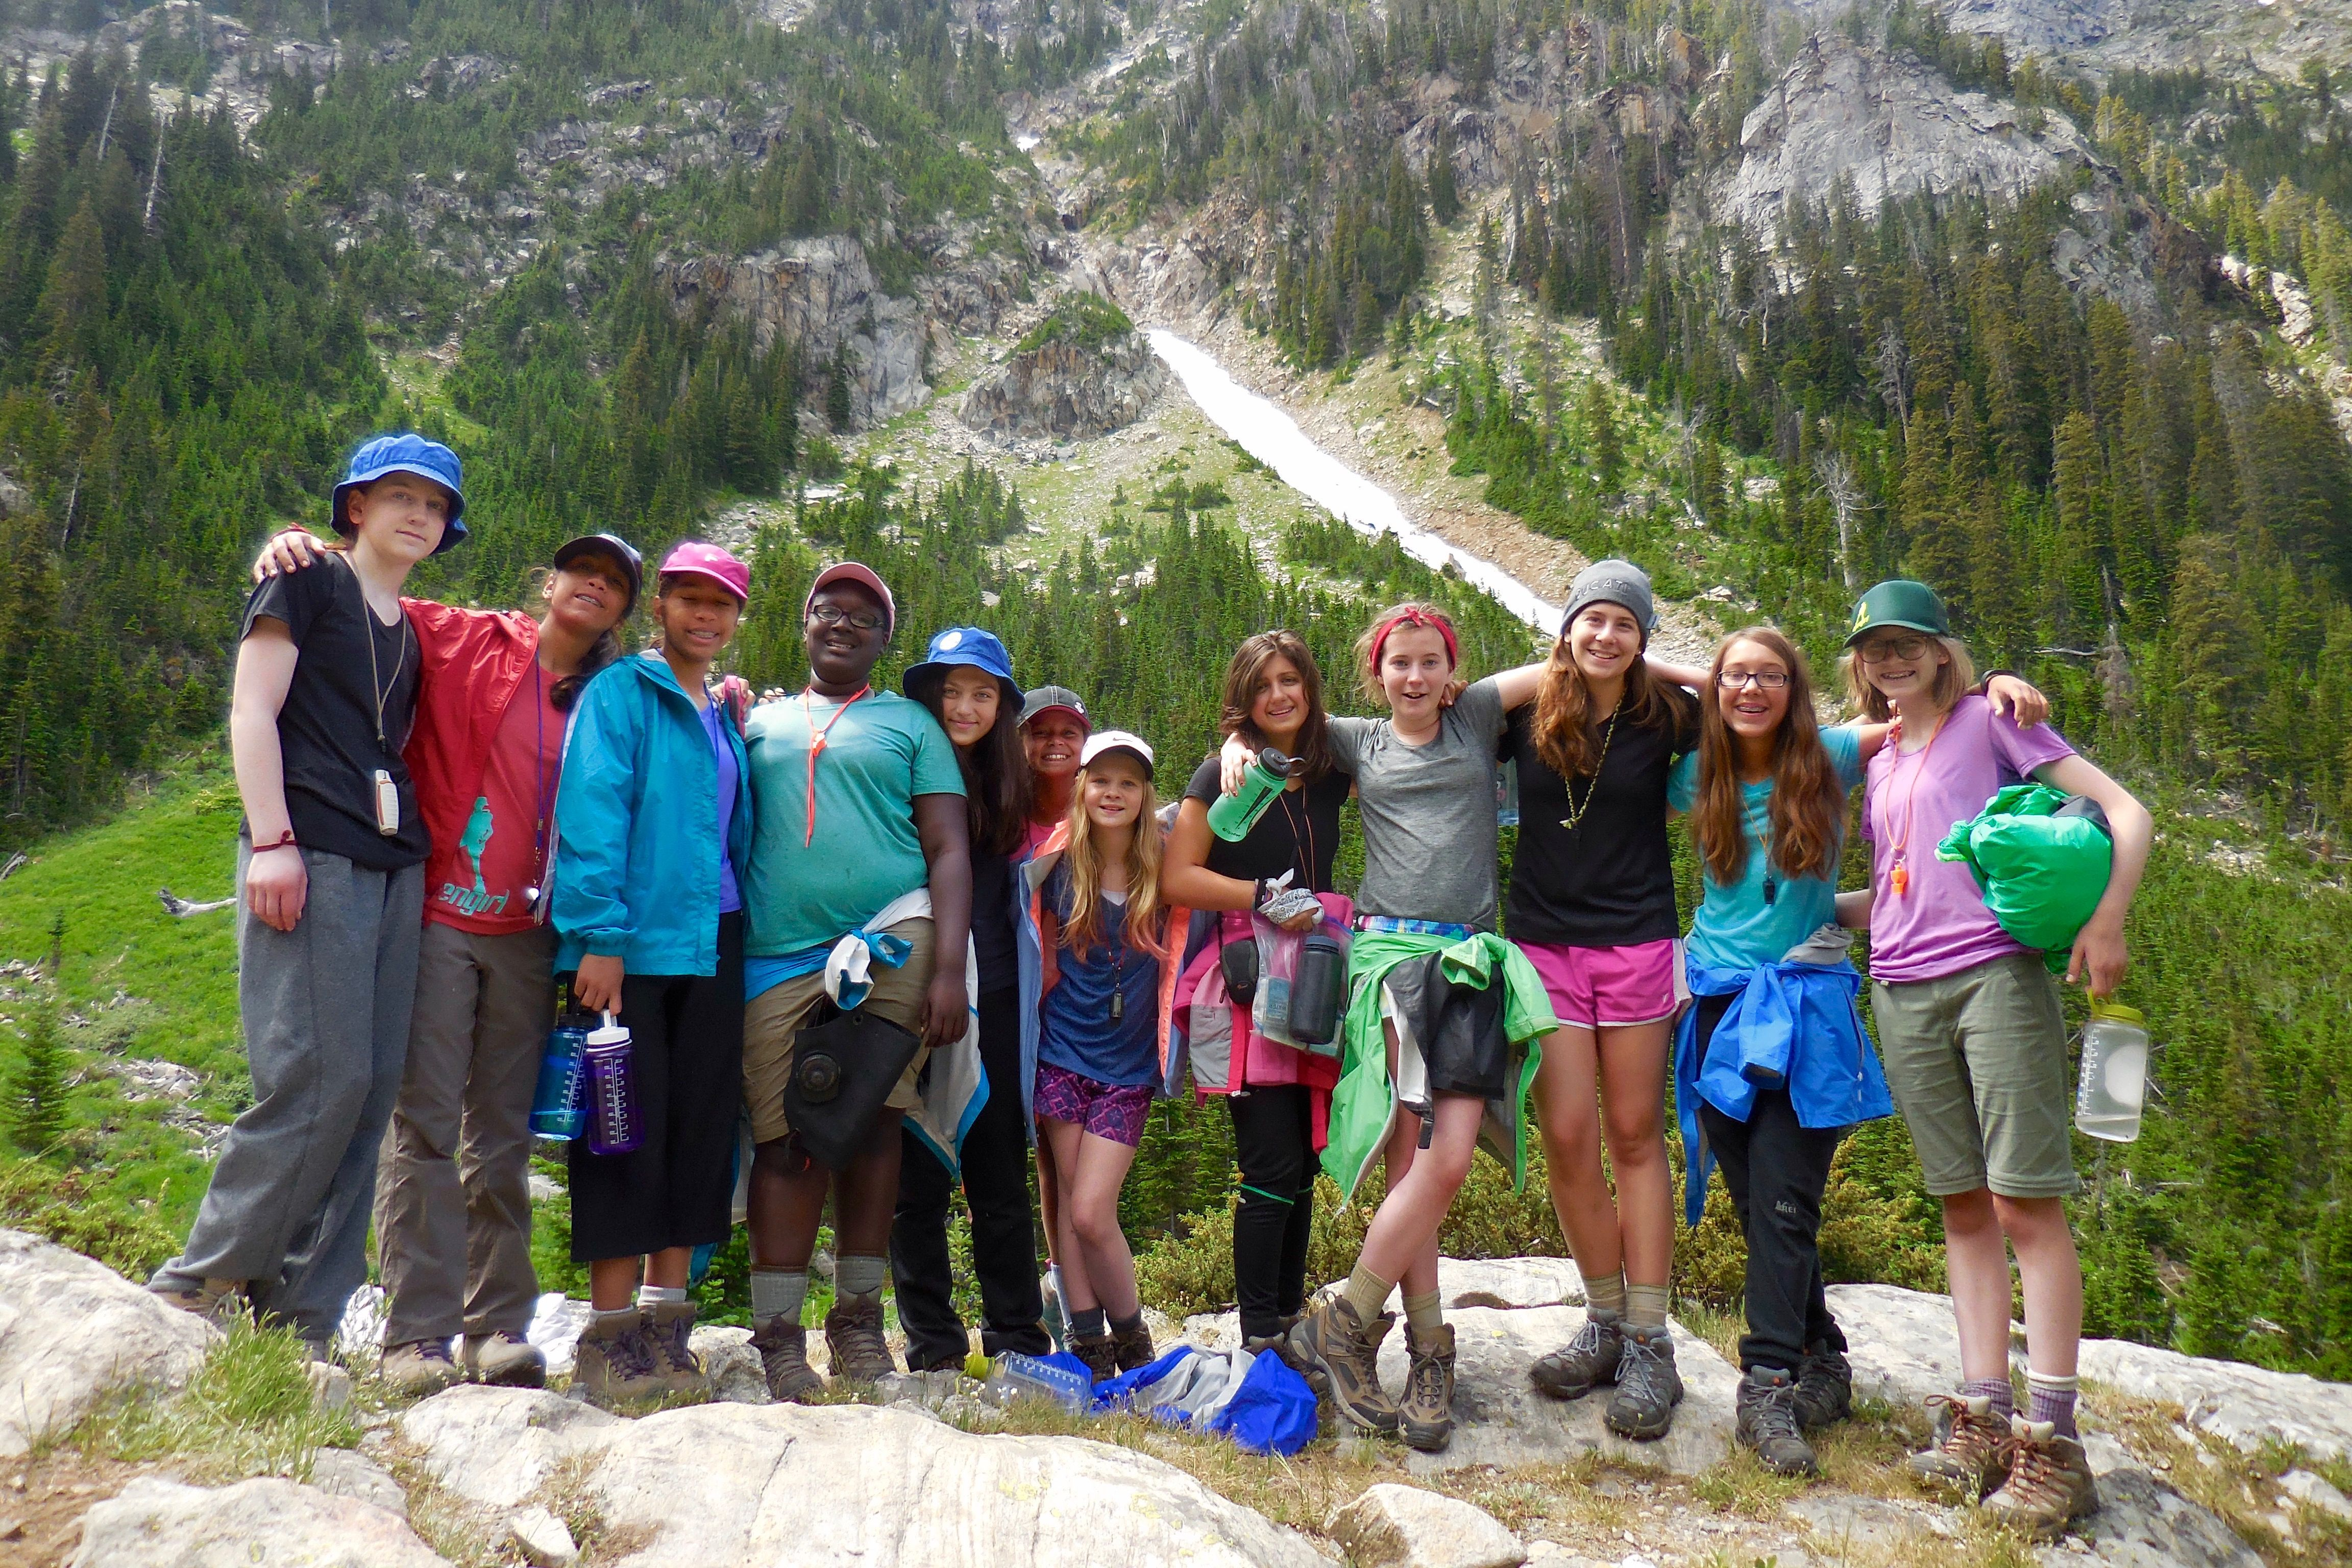 Girls summer camp group backpacking and hiking in the